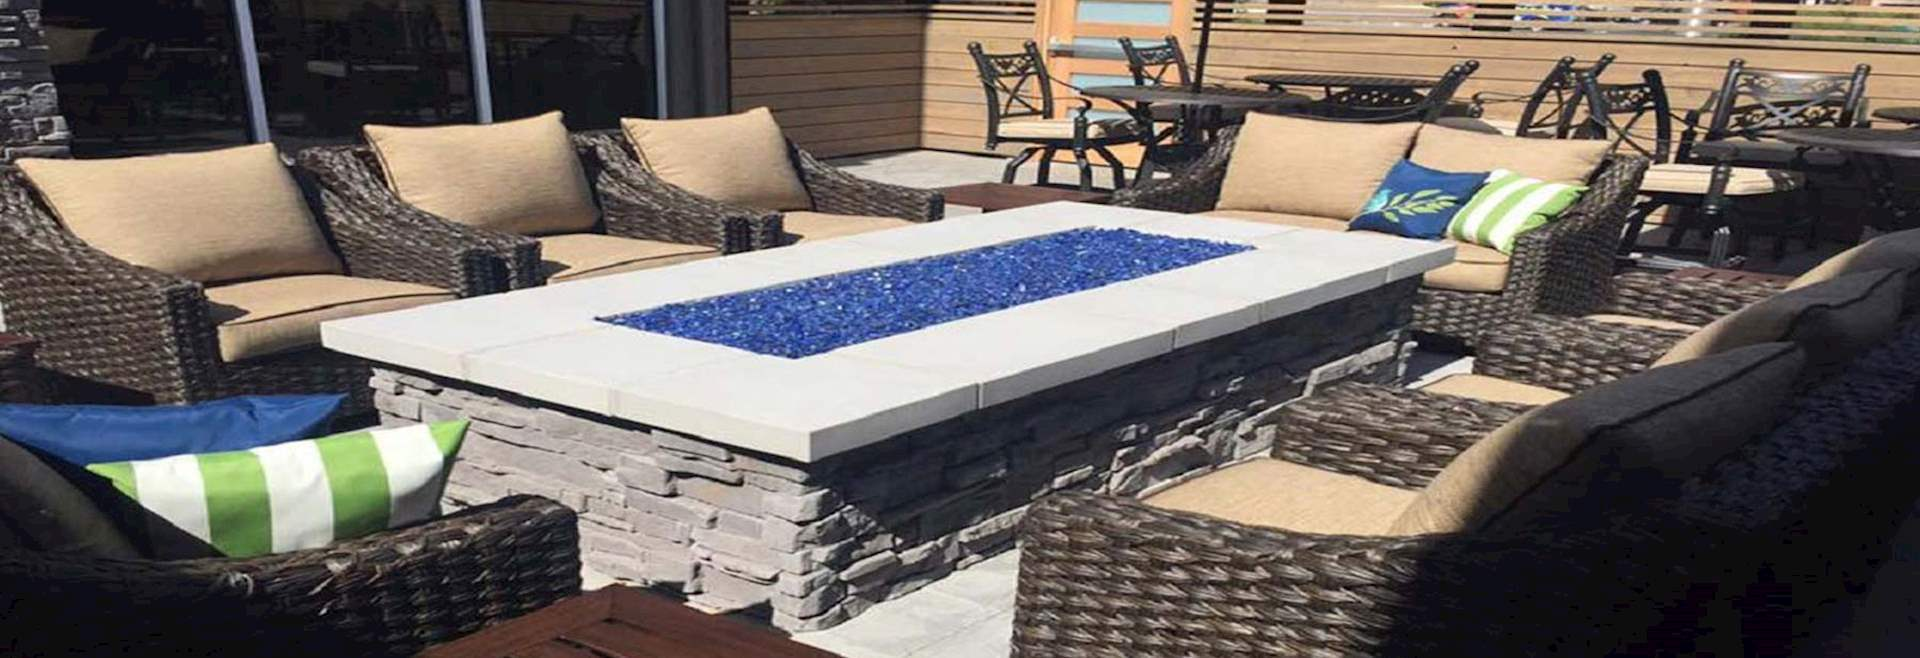 Patio - Holiday Inn Express & Suites Paso Robles